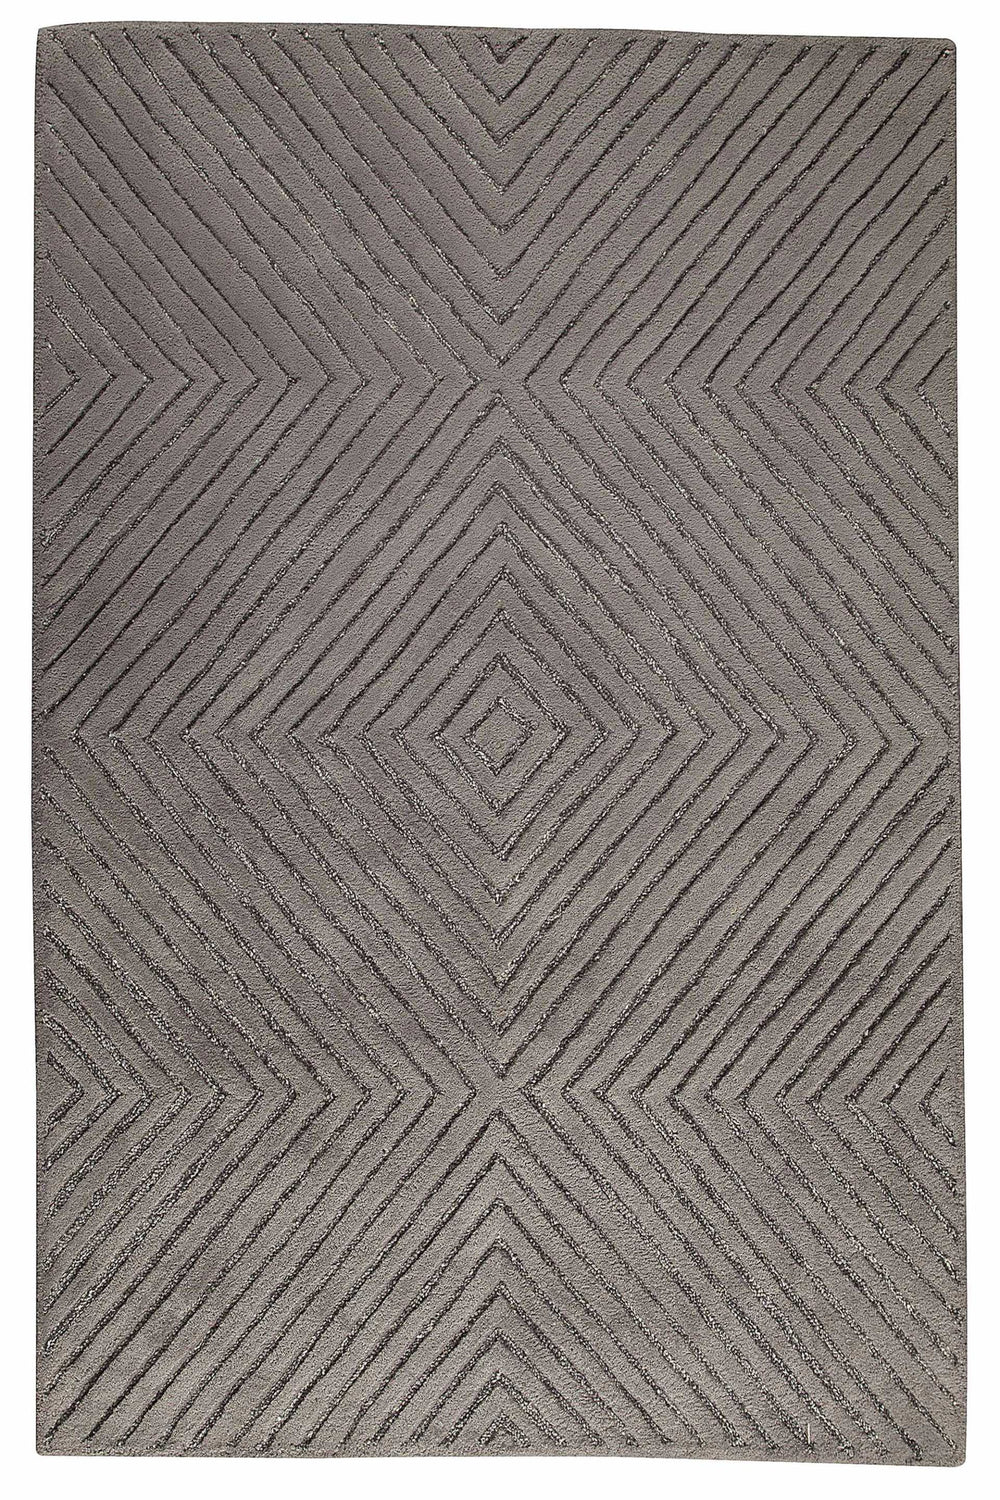 MAT Orange 5WT Union Square Area Rug